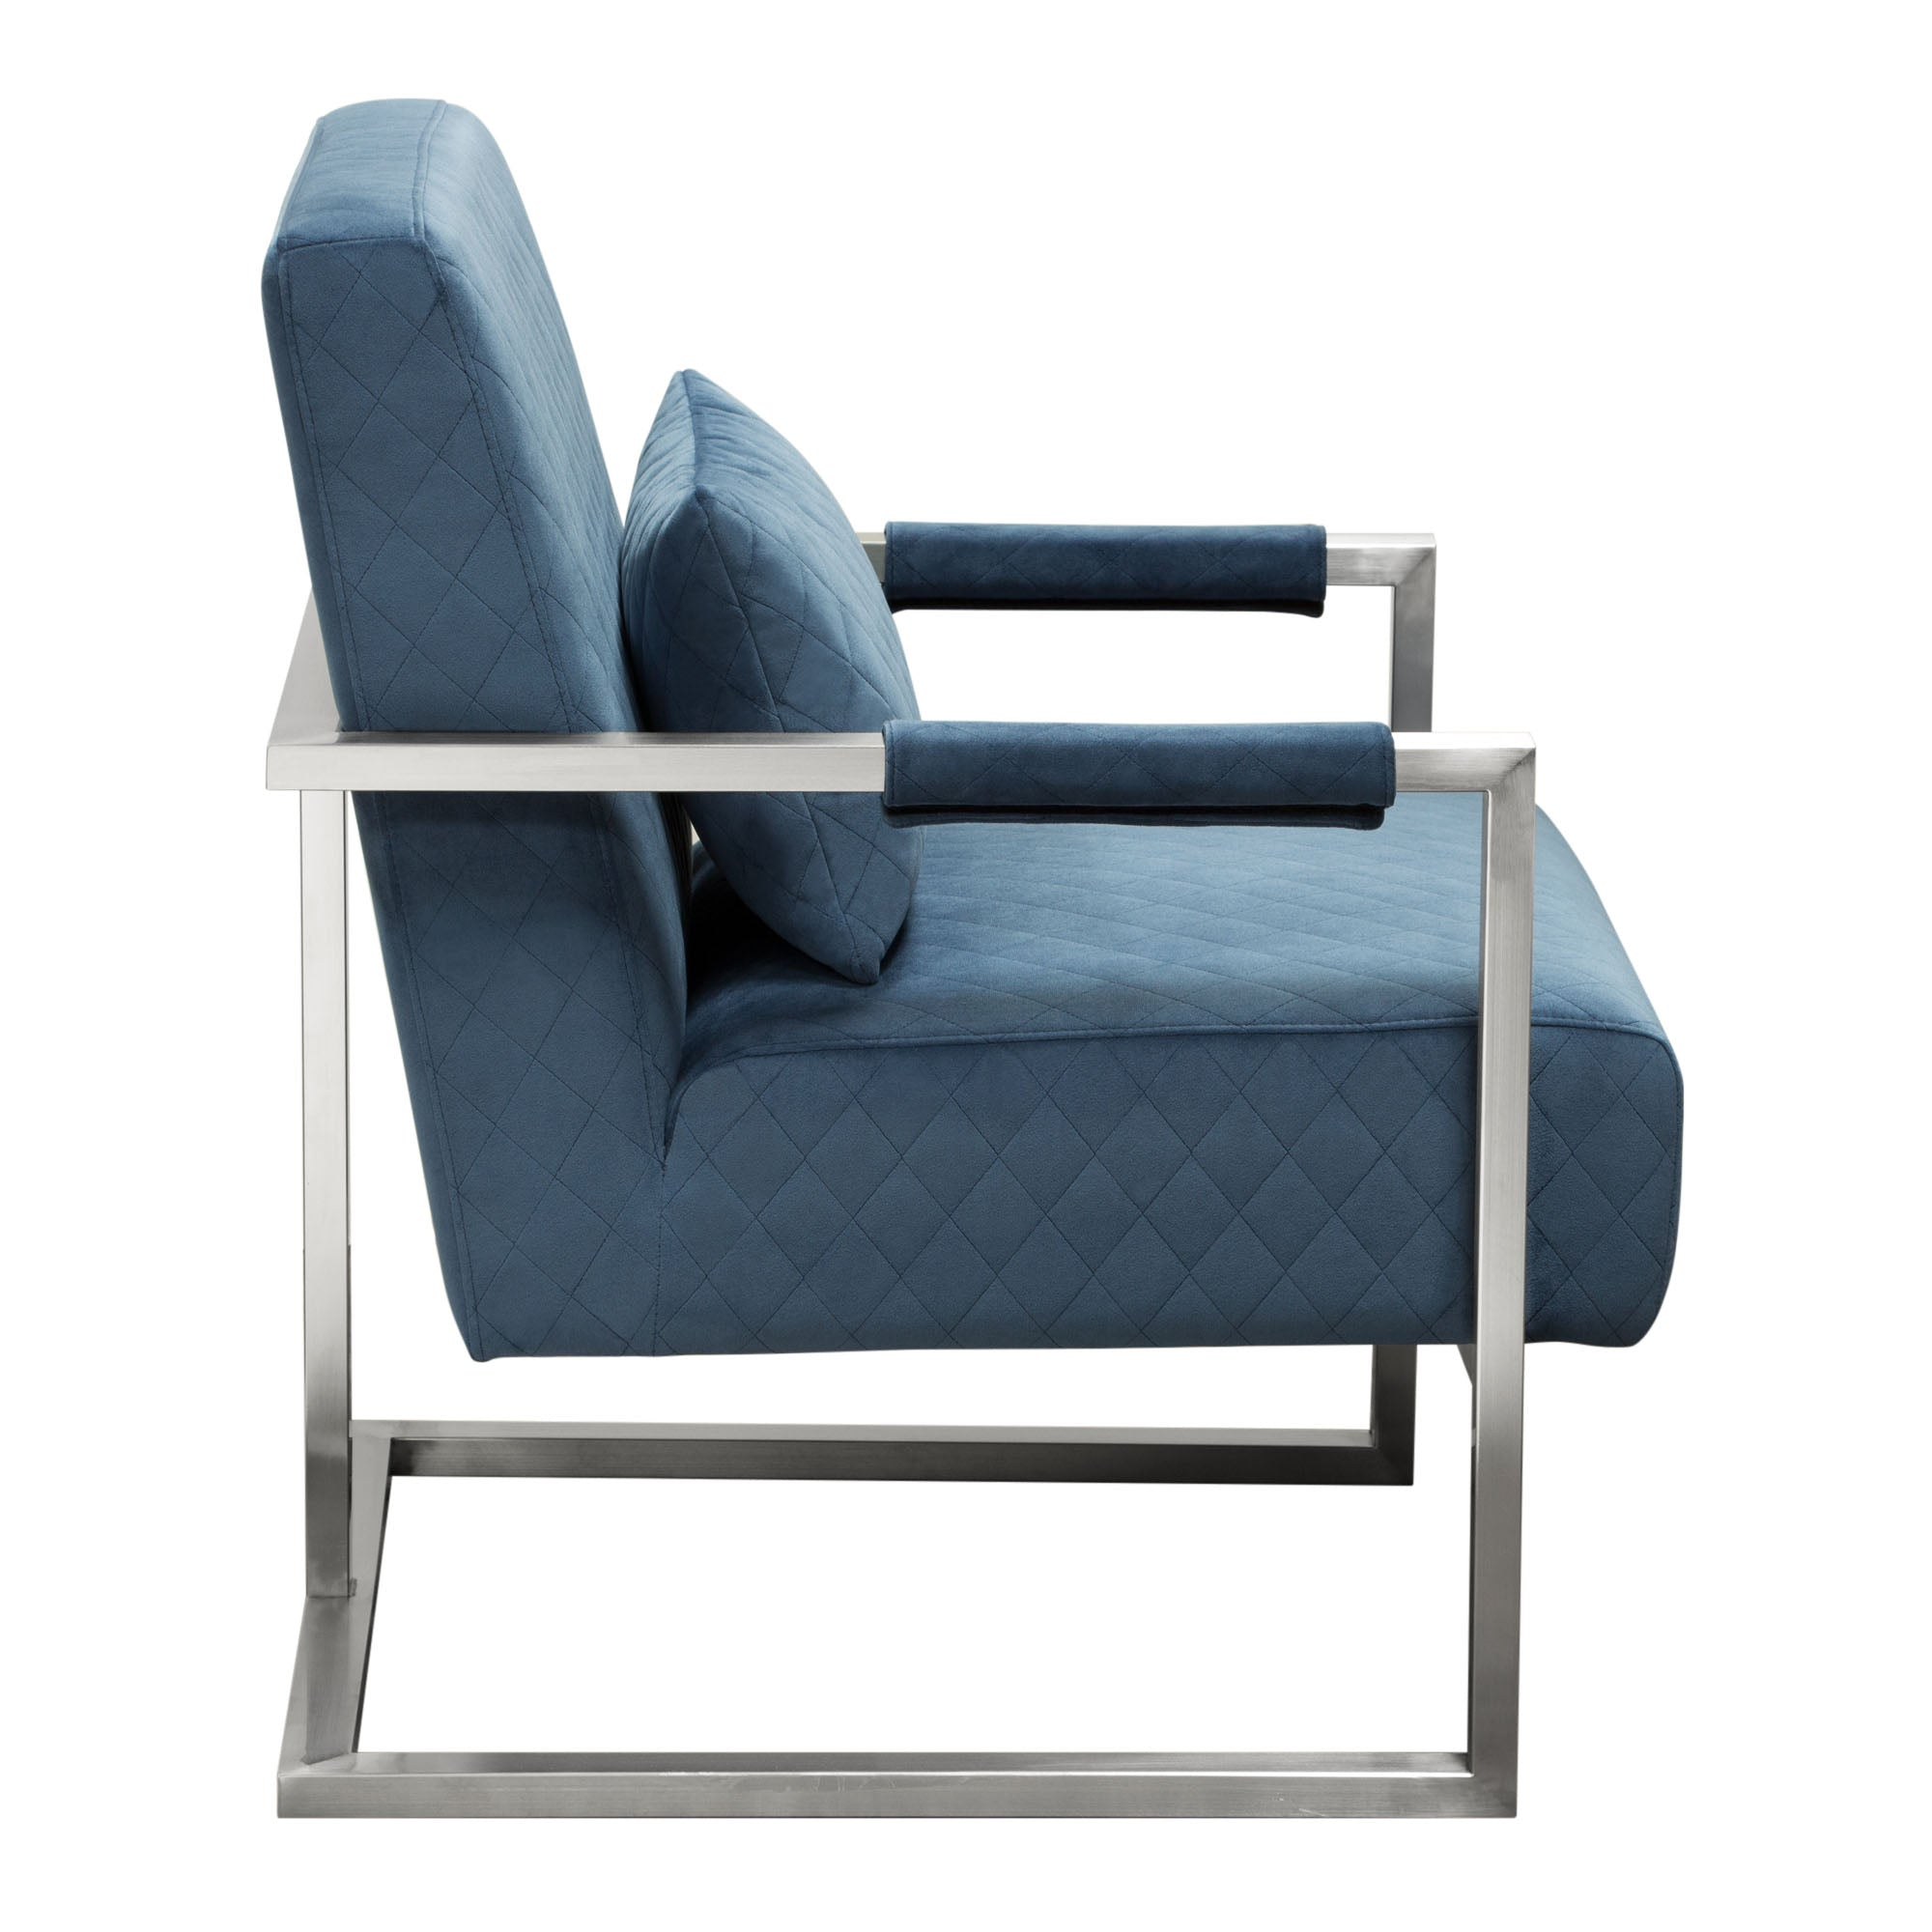 Picture of: Buy Diamond Sofa Studiochbu Studio Accent Chair In Royal Blue Velvet With Diamond Tuft And Stainless Frame At Contemporary Furniture Warehouse